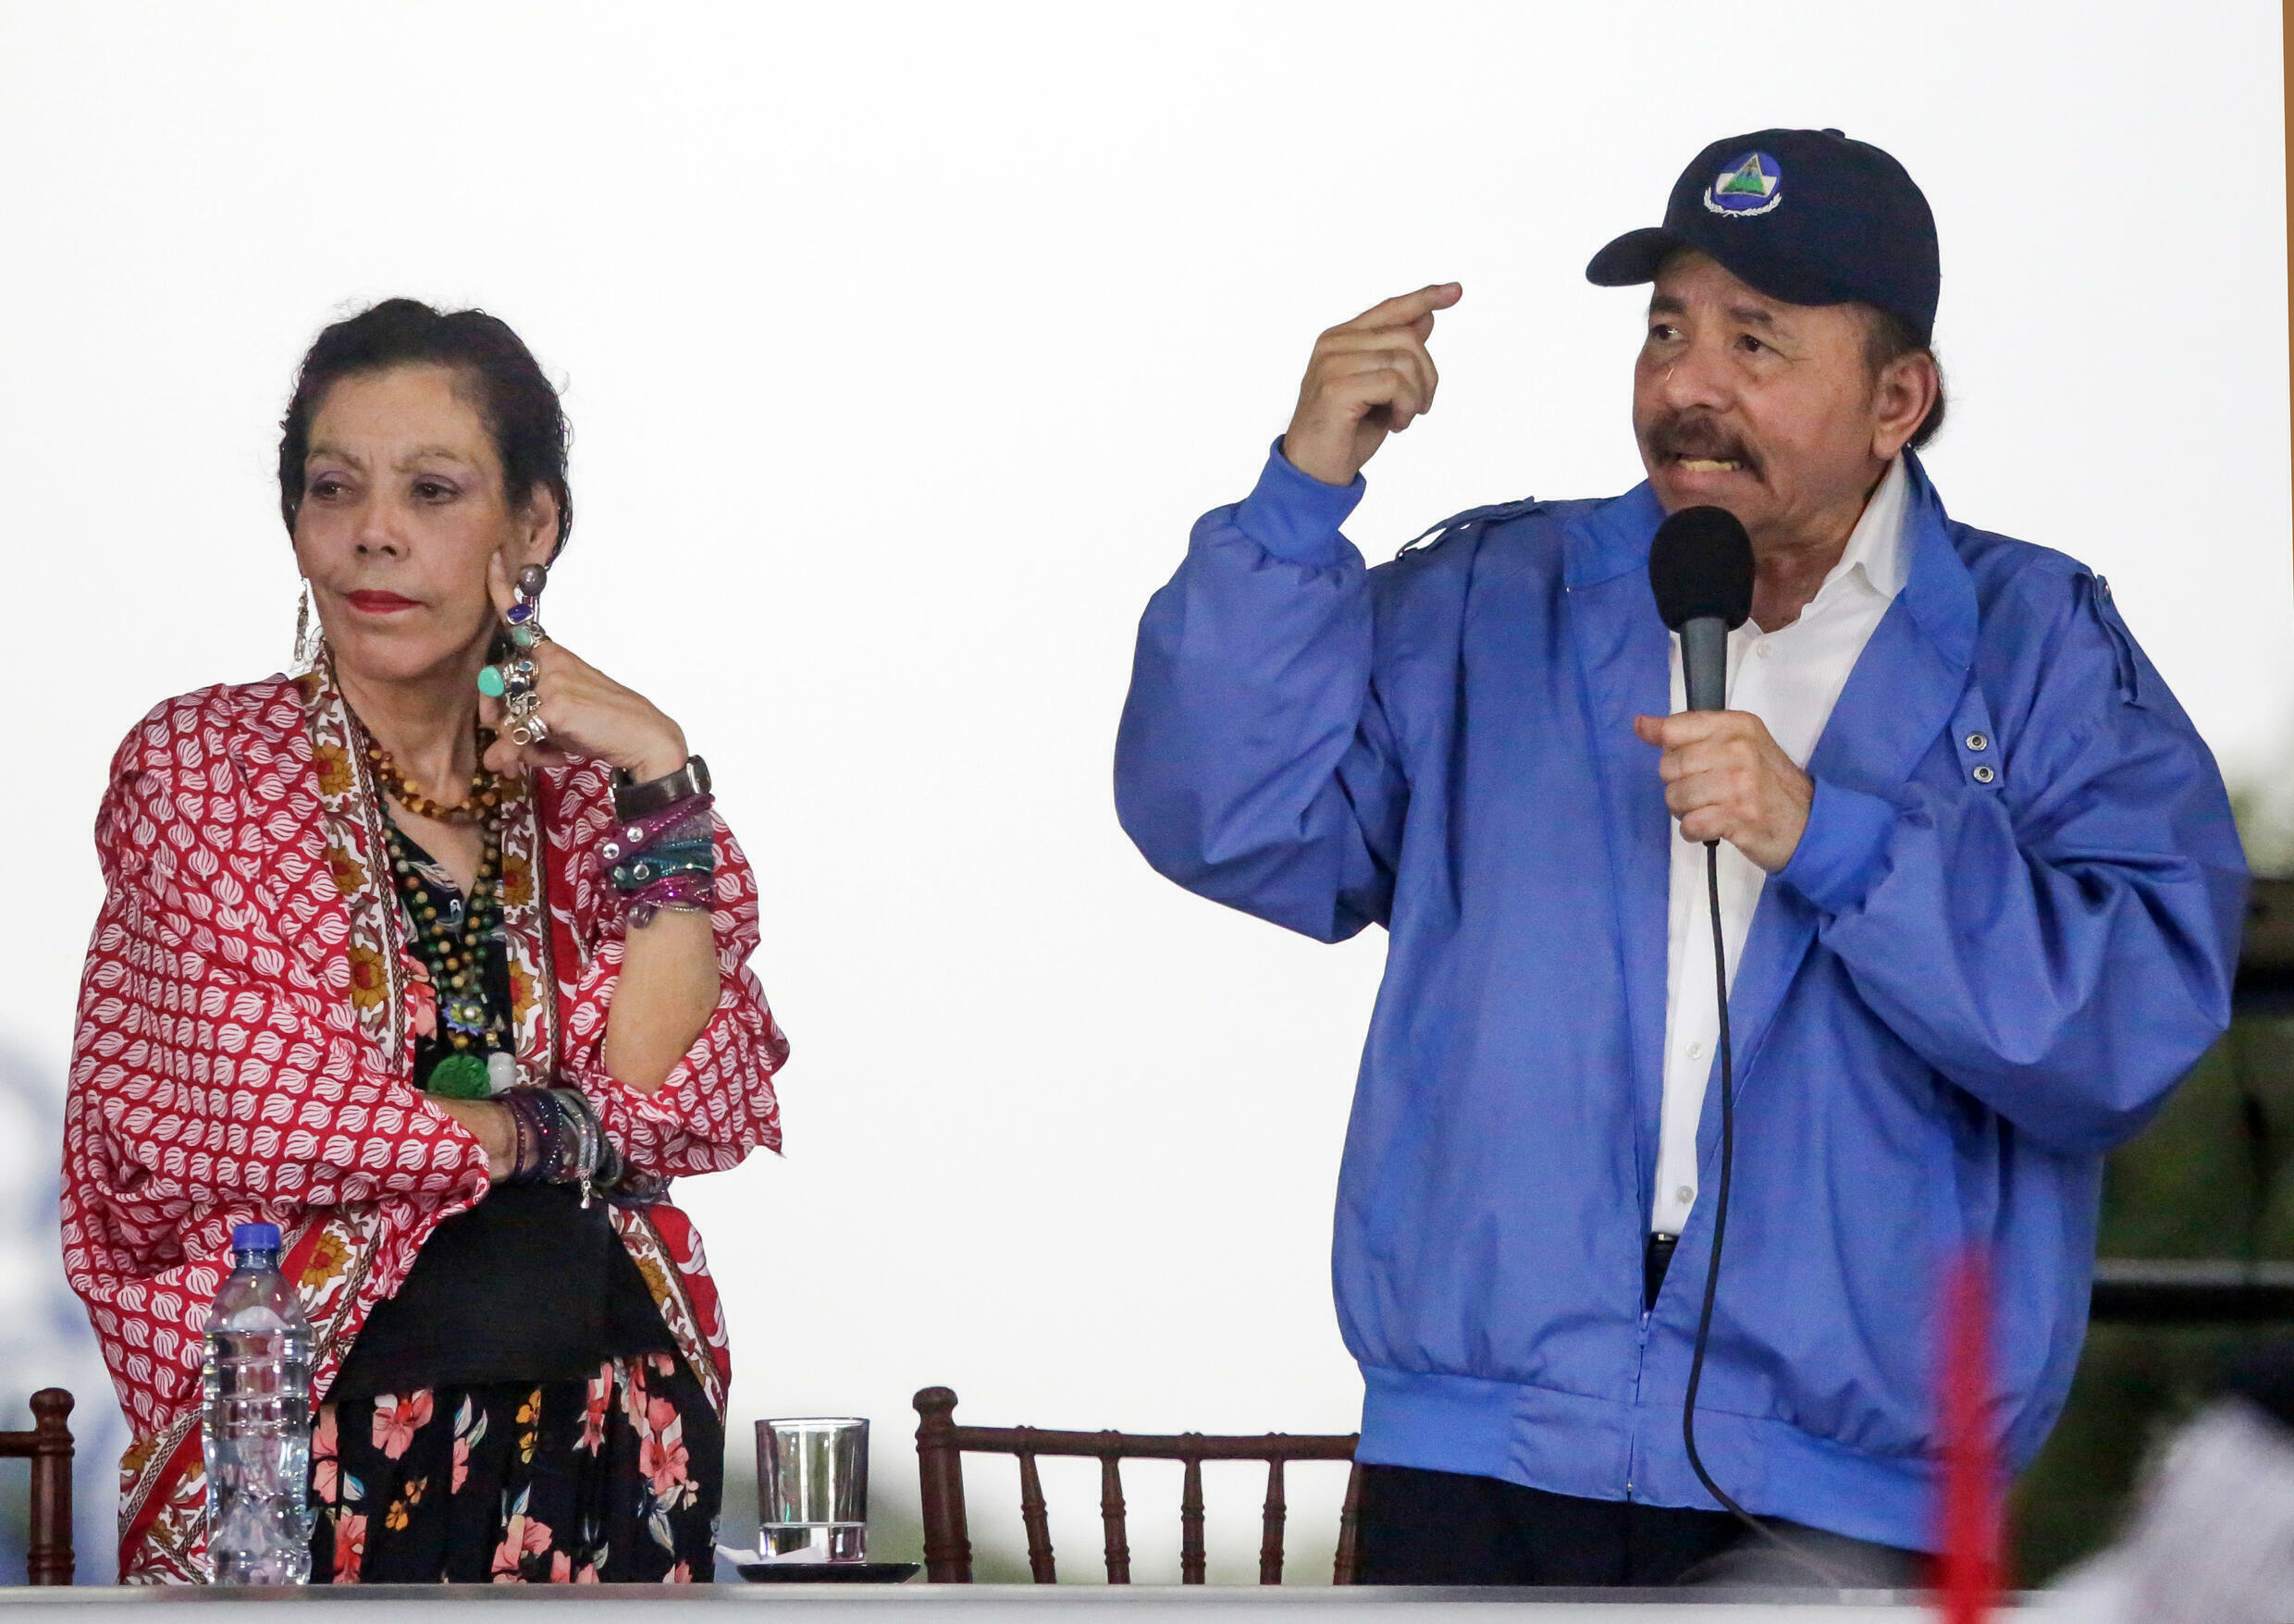 Nicaraguan President Daniel Ortega (R) and his wife, Vice President Rosario Murillo, still command a lot of support despite accusations of repression and a mounting death toll